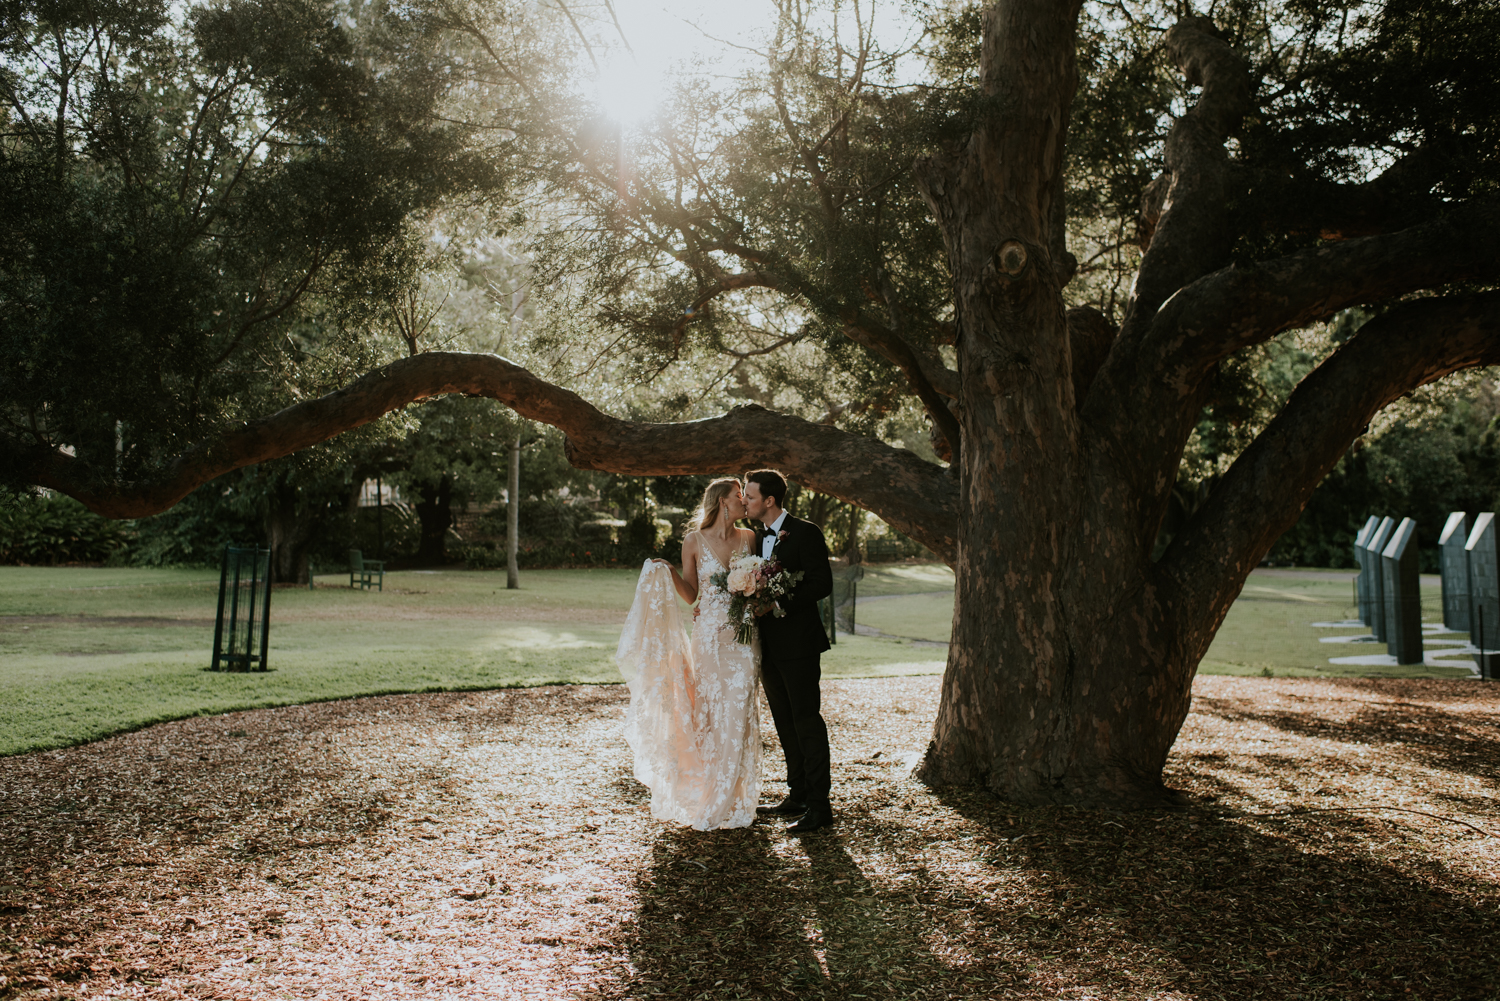 Brisbane Wedding Photographer | Engagement-Elopement Photography | Factory51-City Botantic Gardens Wedding-46.jpg